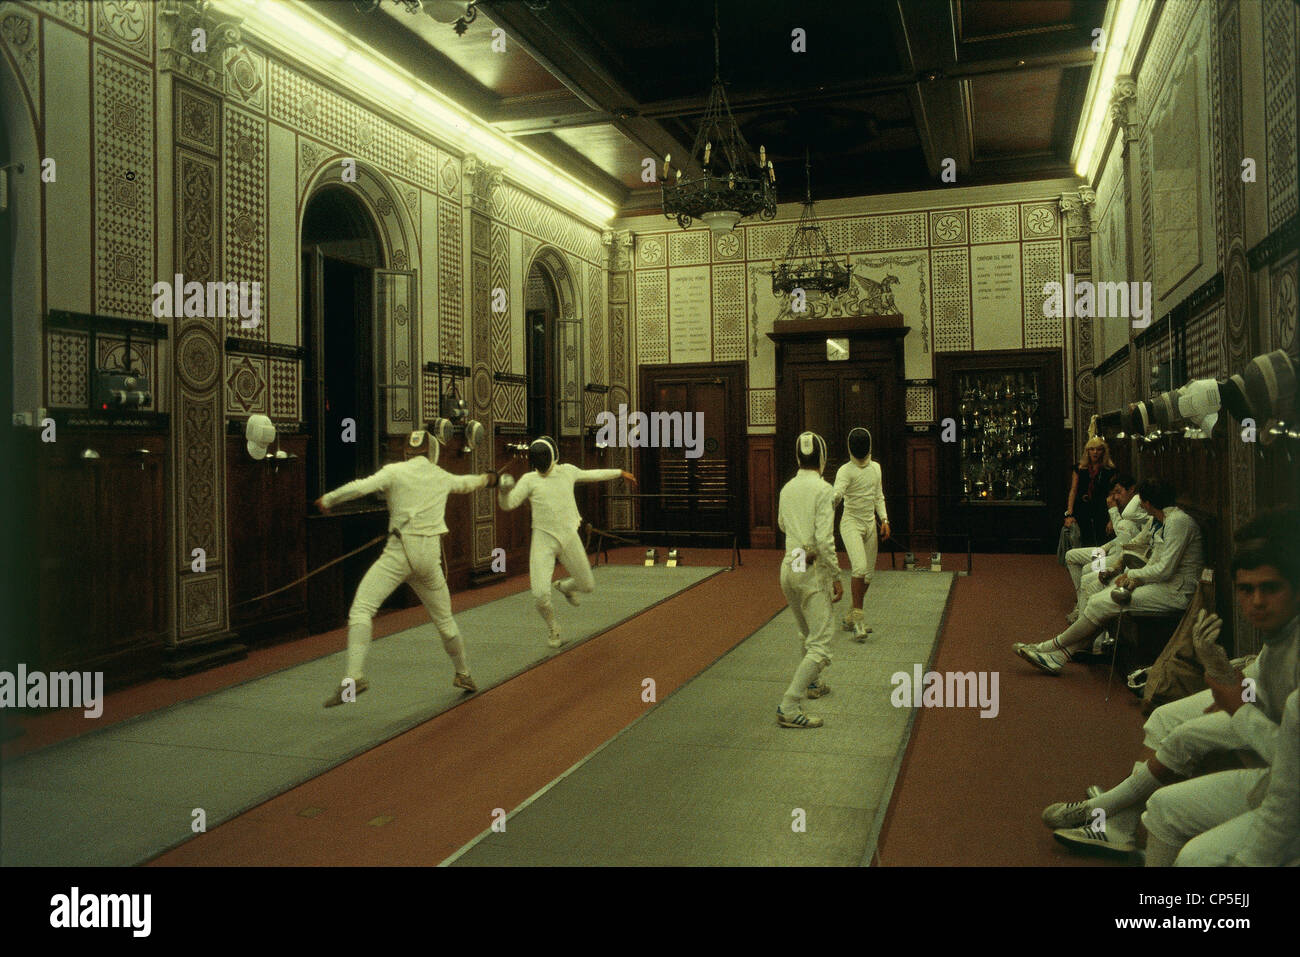 Milan, Company 'The Garden Room Of Fencing - Stock Image